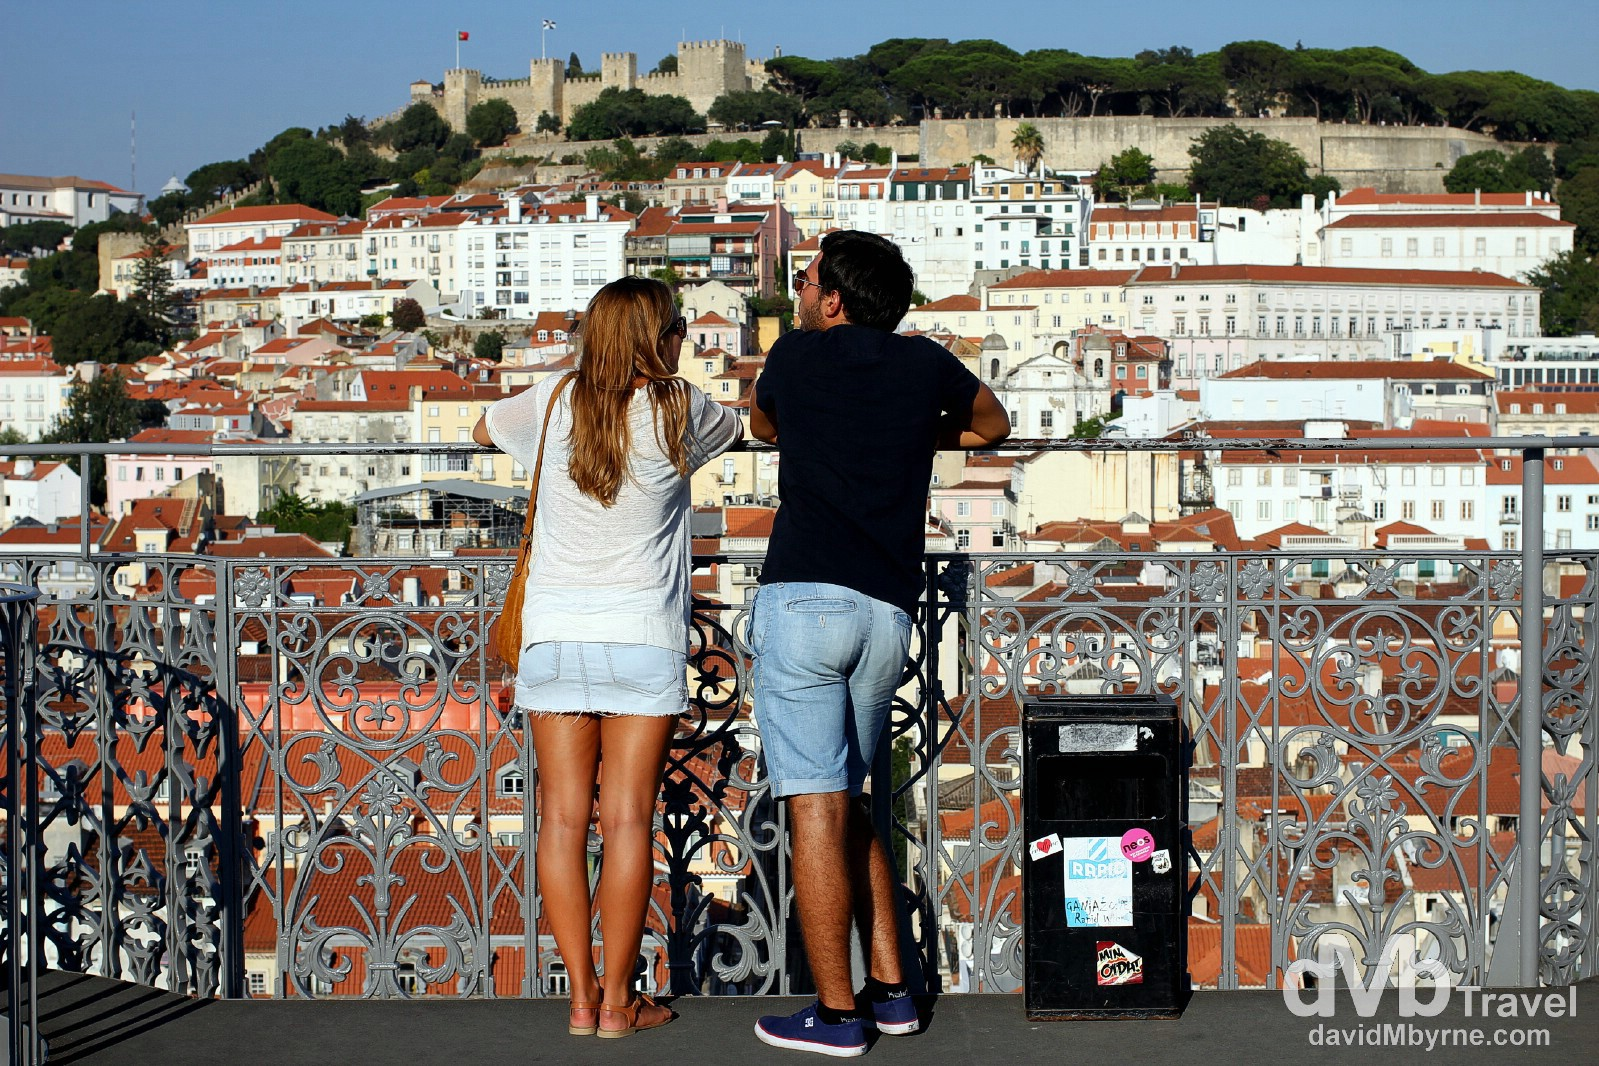 Peering across to the Alfama district of Lisbon from atop the Santa Justa Lift, Lisbon, Portugal. August 26th 2013.